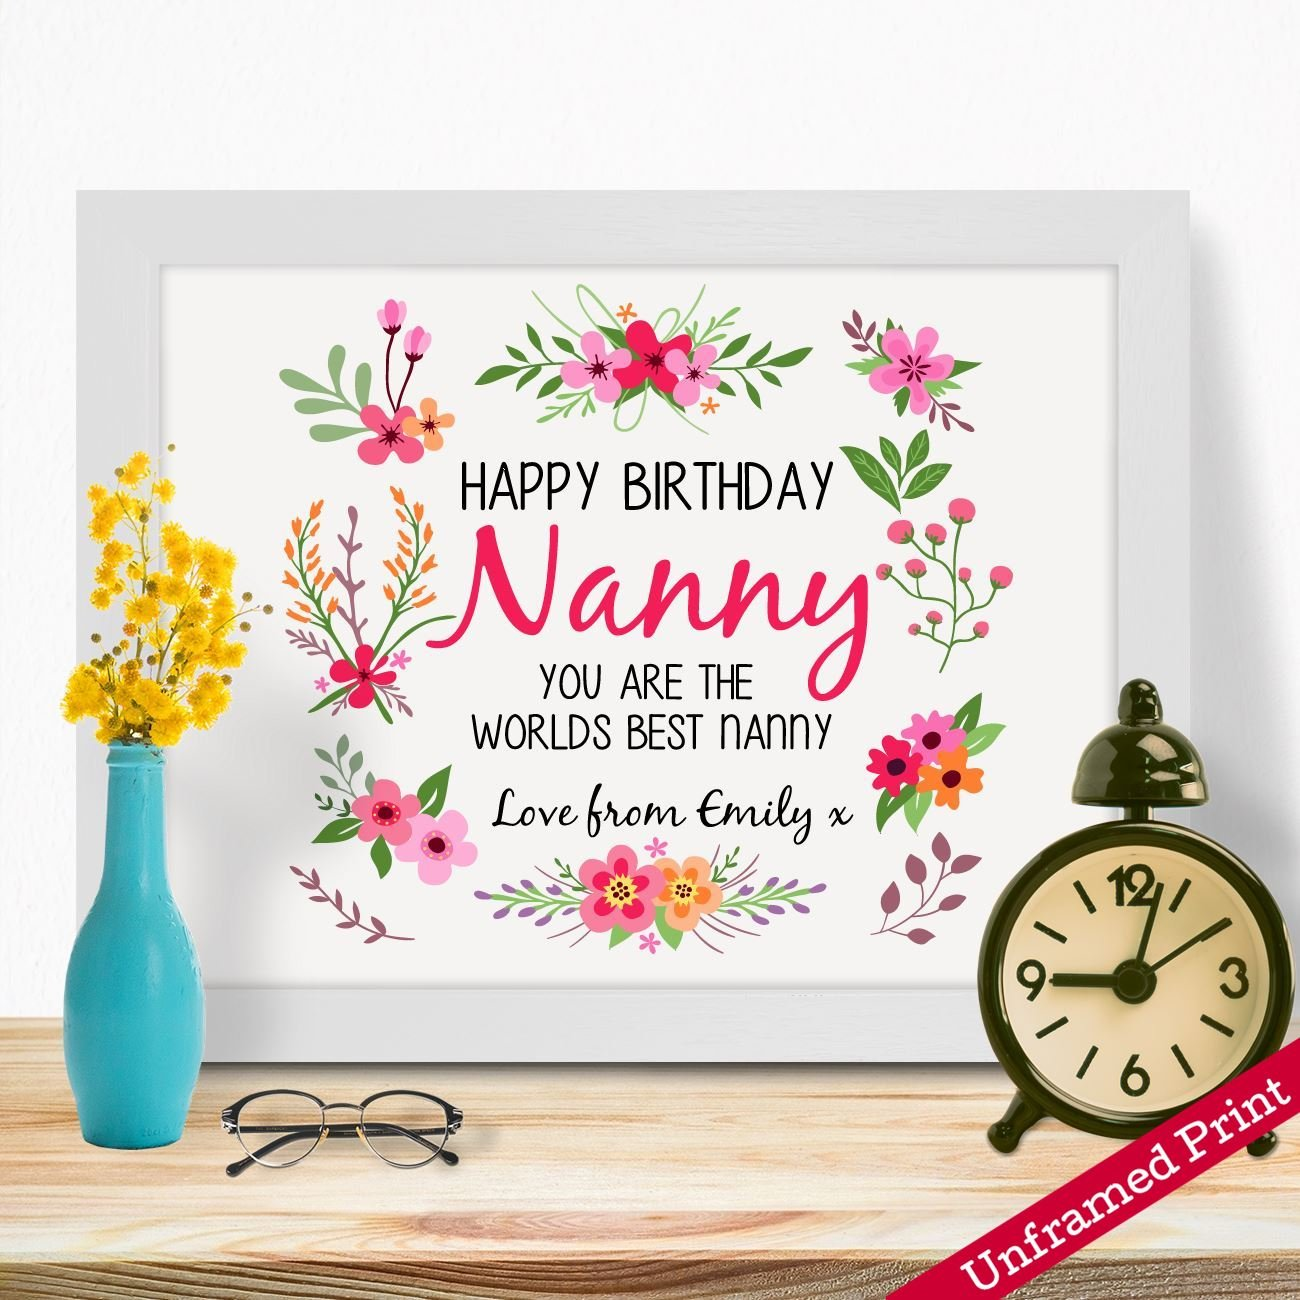 Personalised Gifts For Grandma Nanny Granny Mothers Day Birthday Christmas Xmas From Grandson Granddaughter Grandchildren Grandkids Long Distance First Time